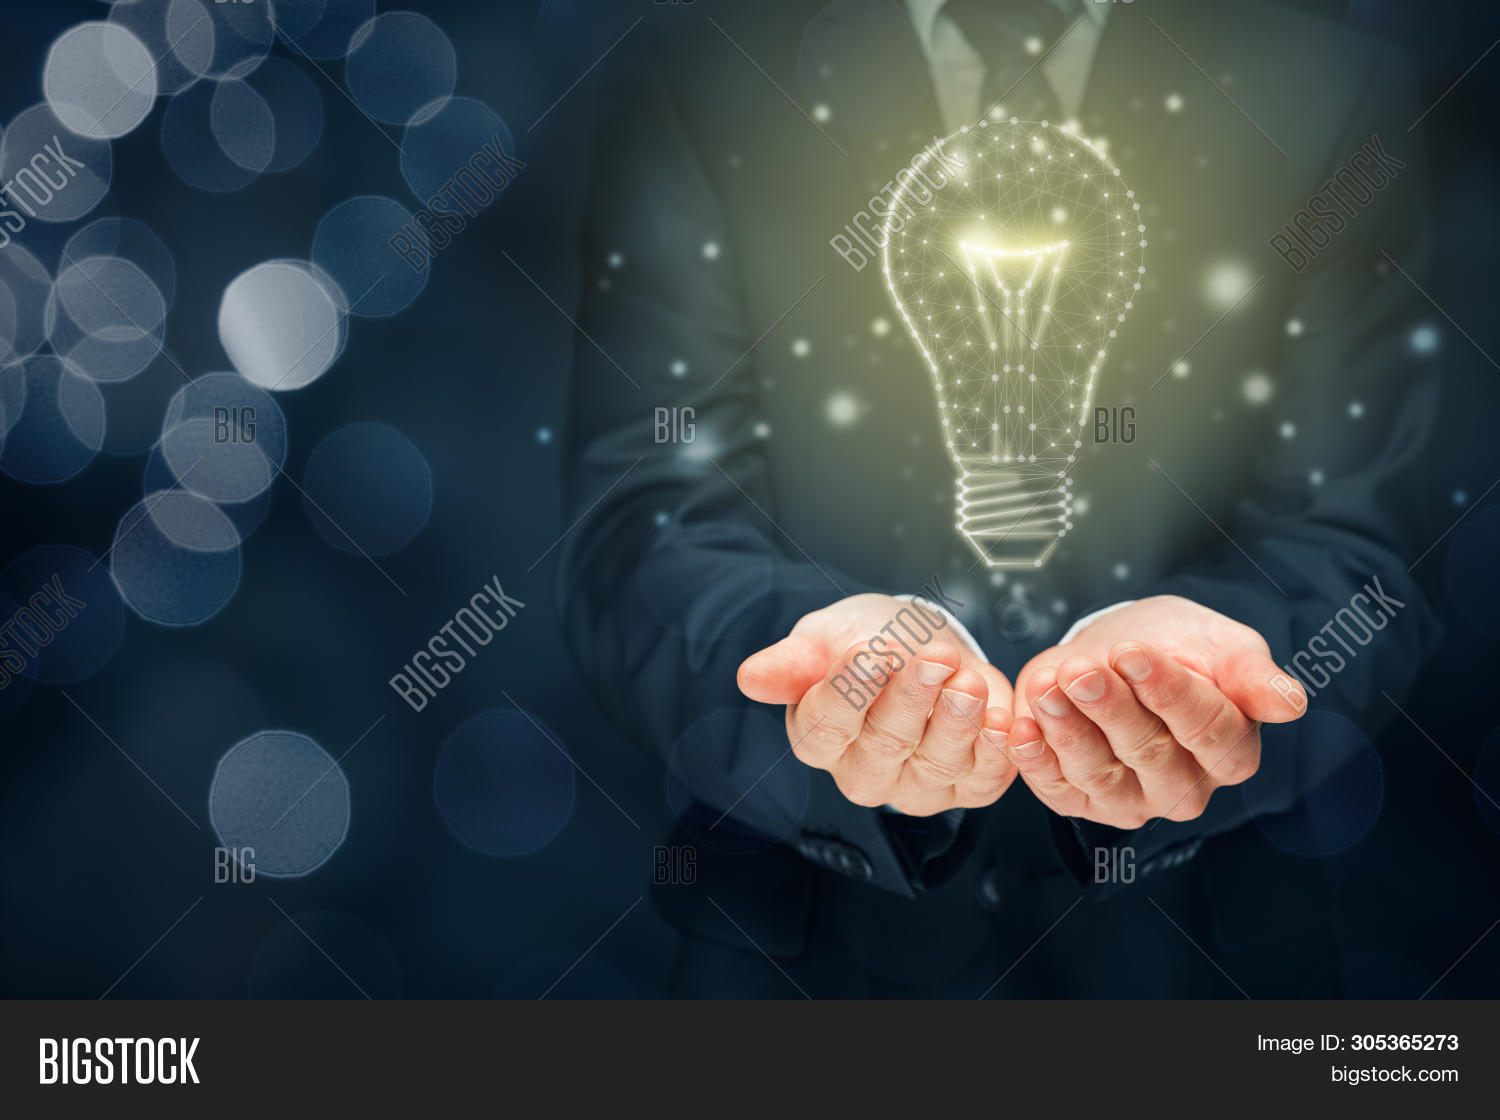 author,bulb,concept,conceptual,create,creative,creativeness,creativity,give,graphics,idea,imagination,imagine,innovate,innovation,inspiration,intelligence,invention,light,lightbulb,metaphor,mind,polygons,result,solution,symbol,think,thinking